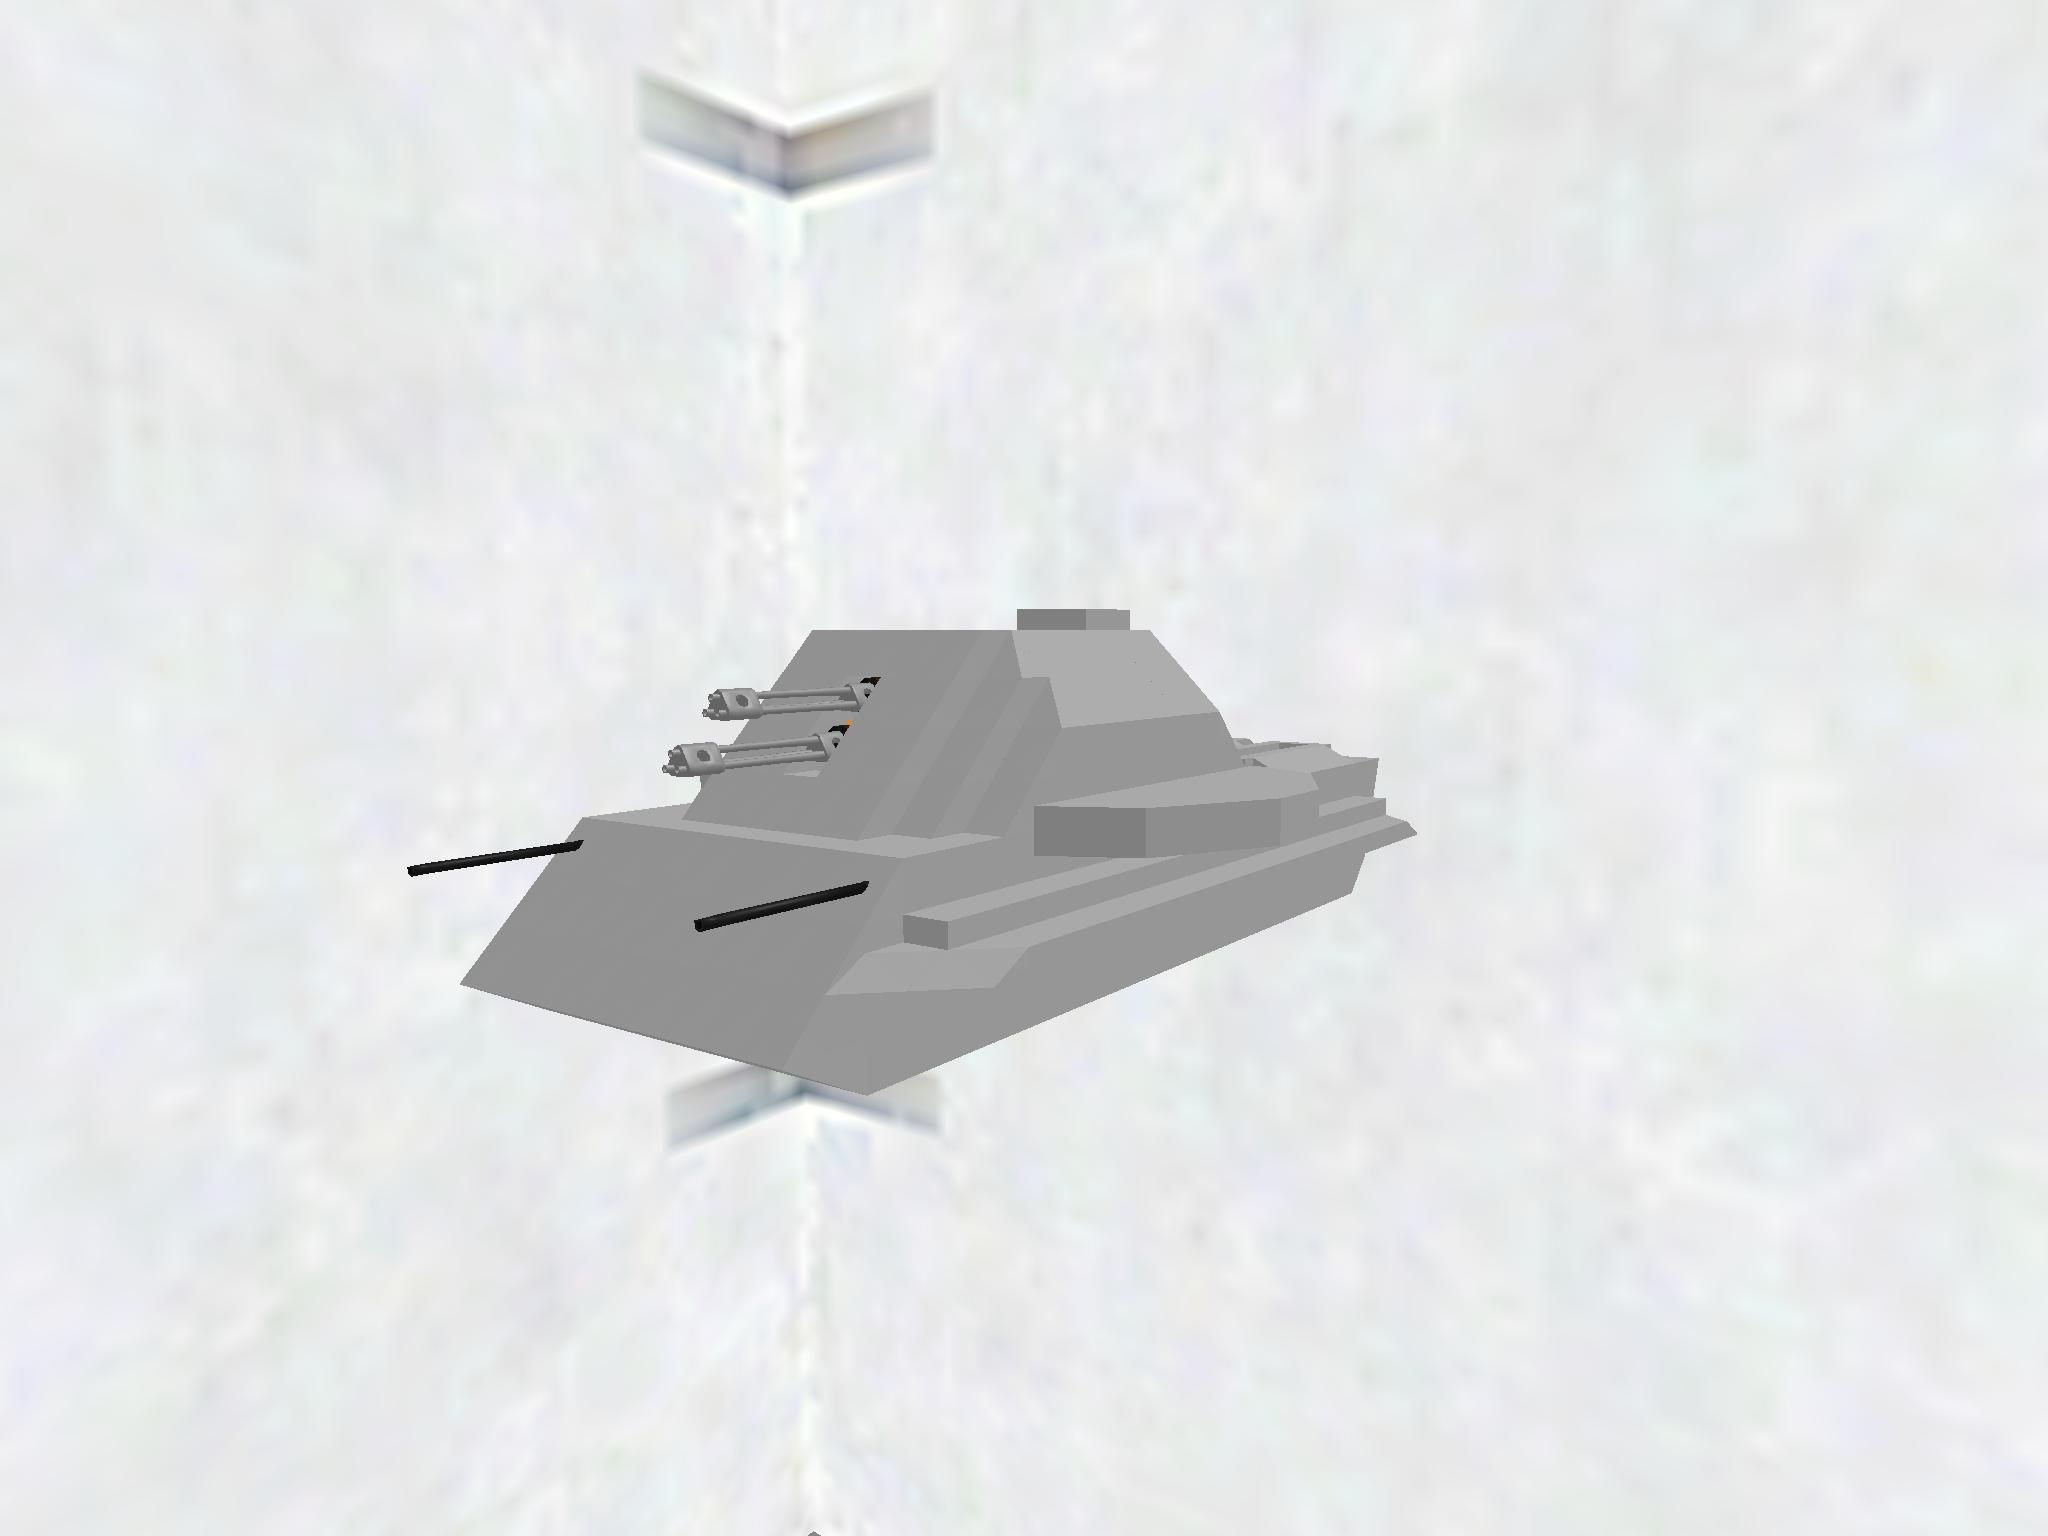 Hover boat